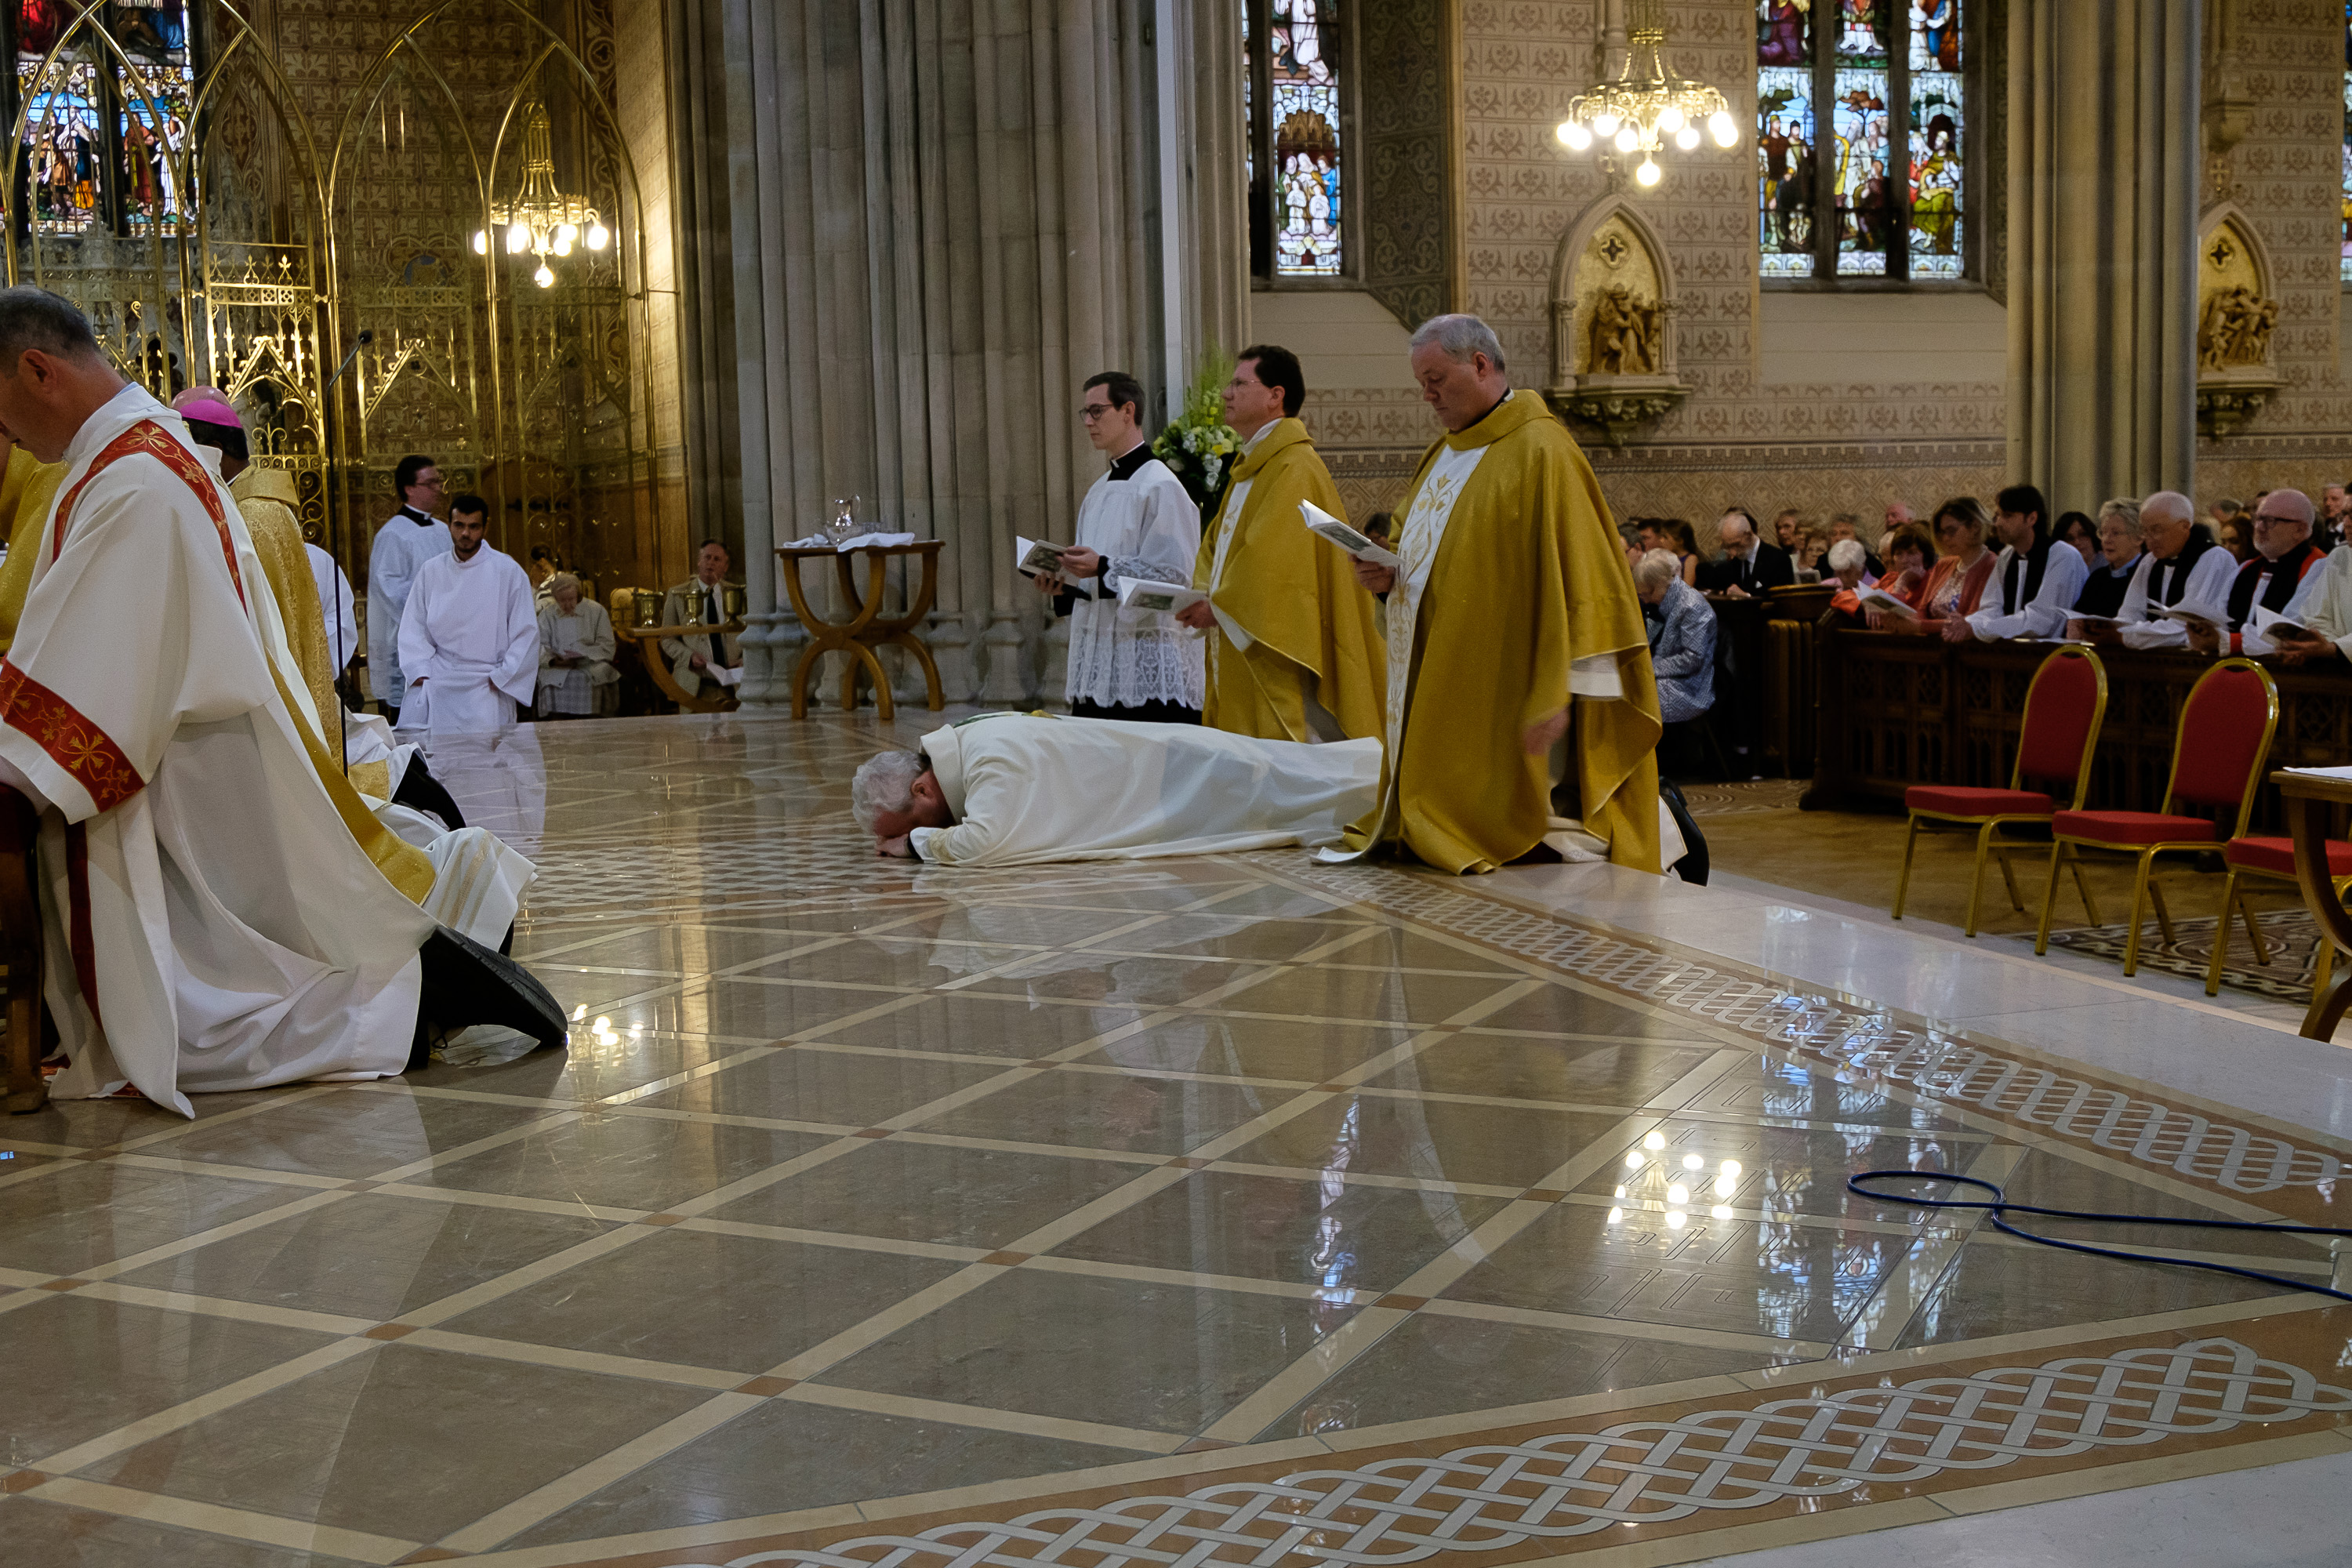 Bishop Michael Router prostrates himself in front of the altar.